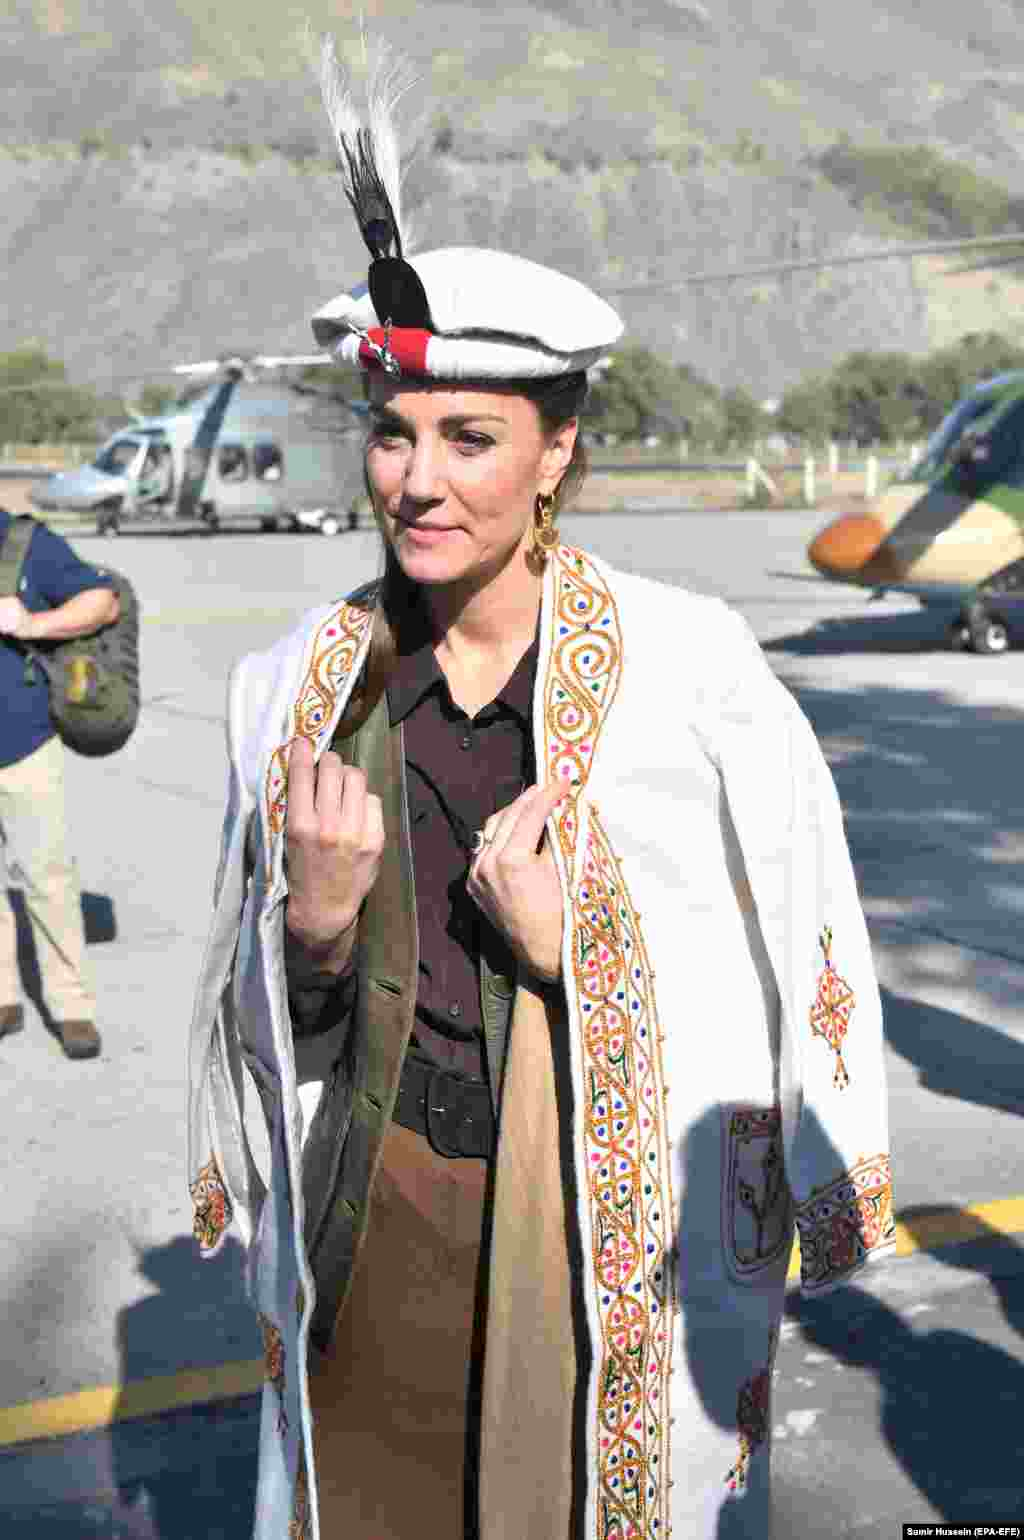 The feathered cap is the same kind worn by William's mother, Princess Diana, during her 1991 visit to Pakistan.